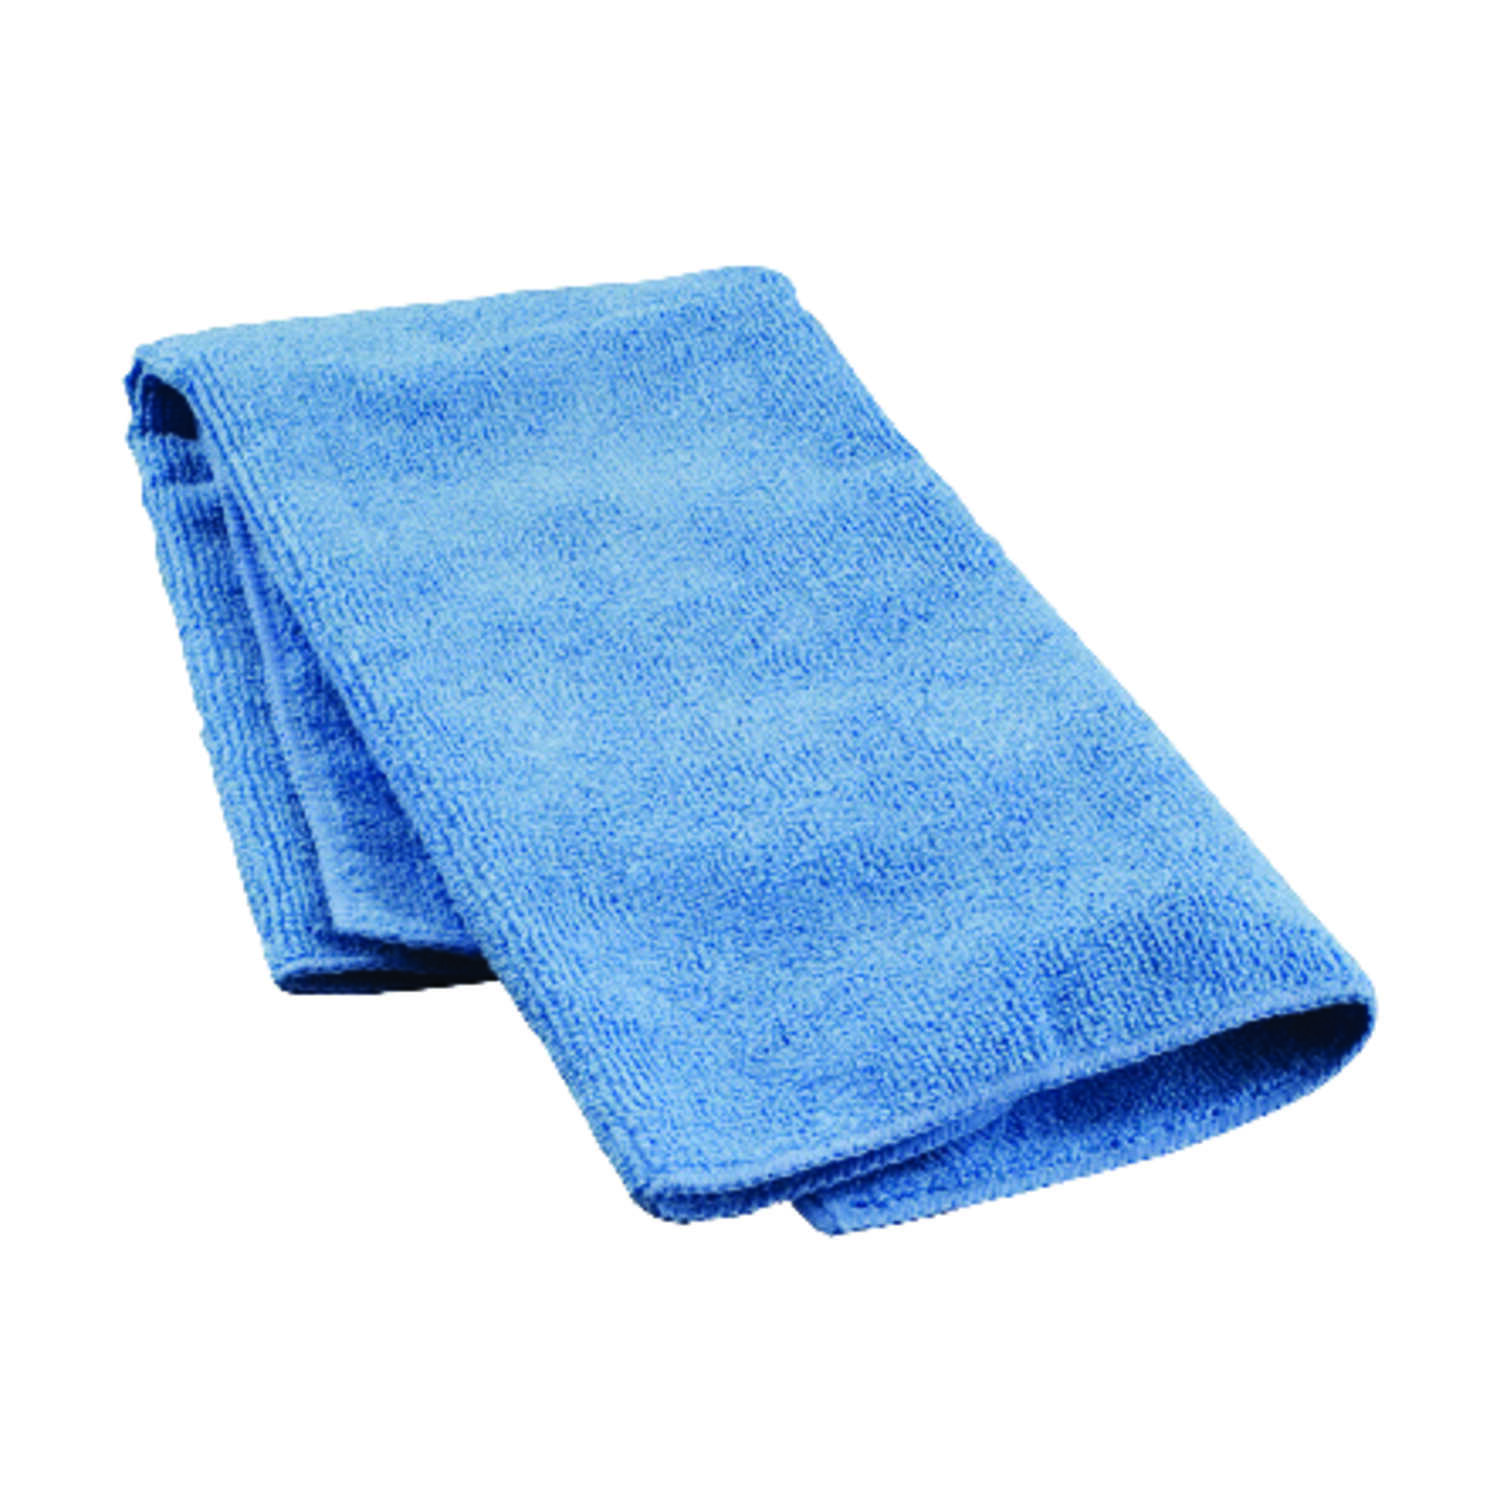 Quickie  Home Pro  Microfiber  Cleaning Cloth  14 in. W x 14 in. L 12 pk